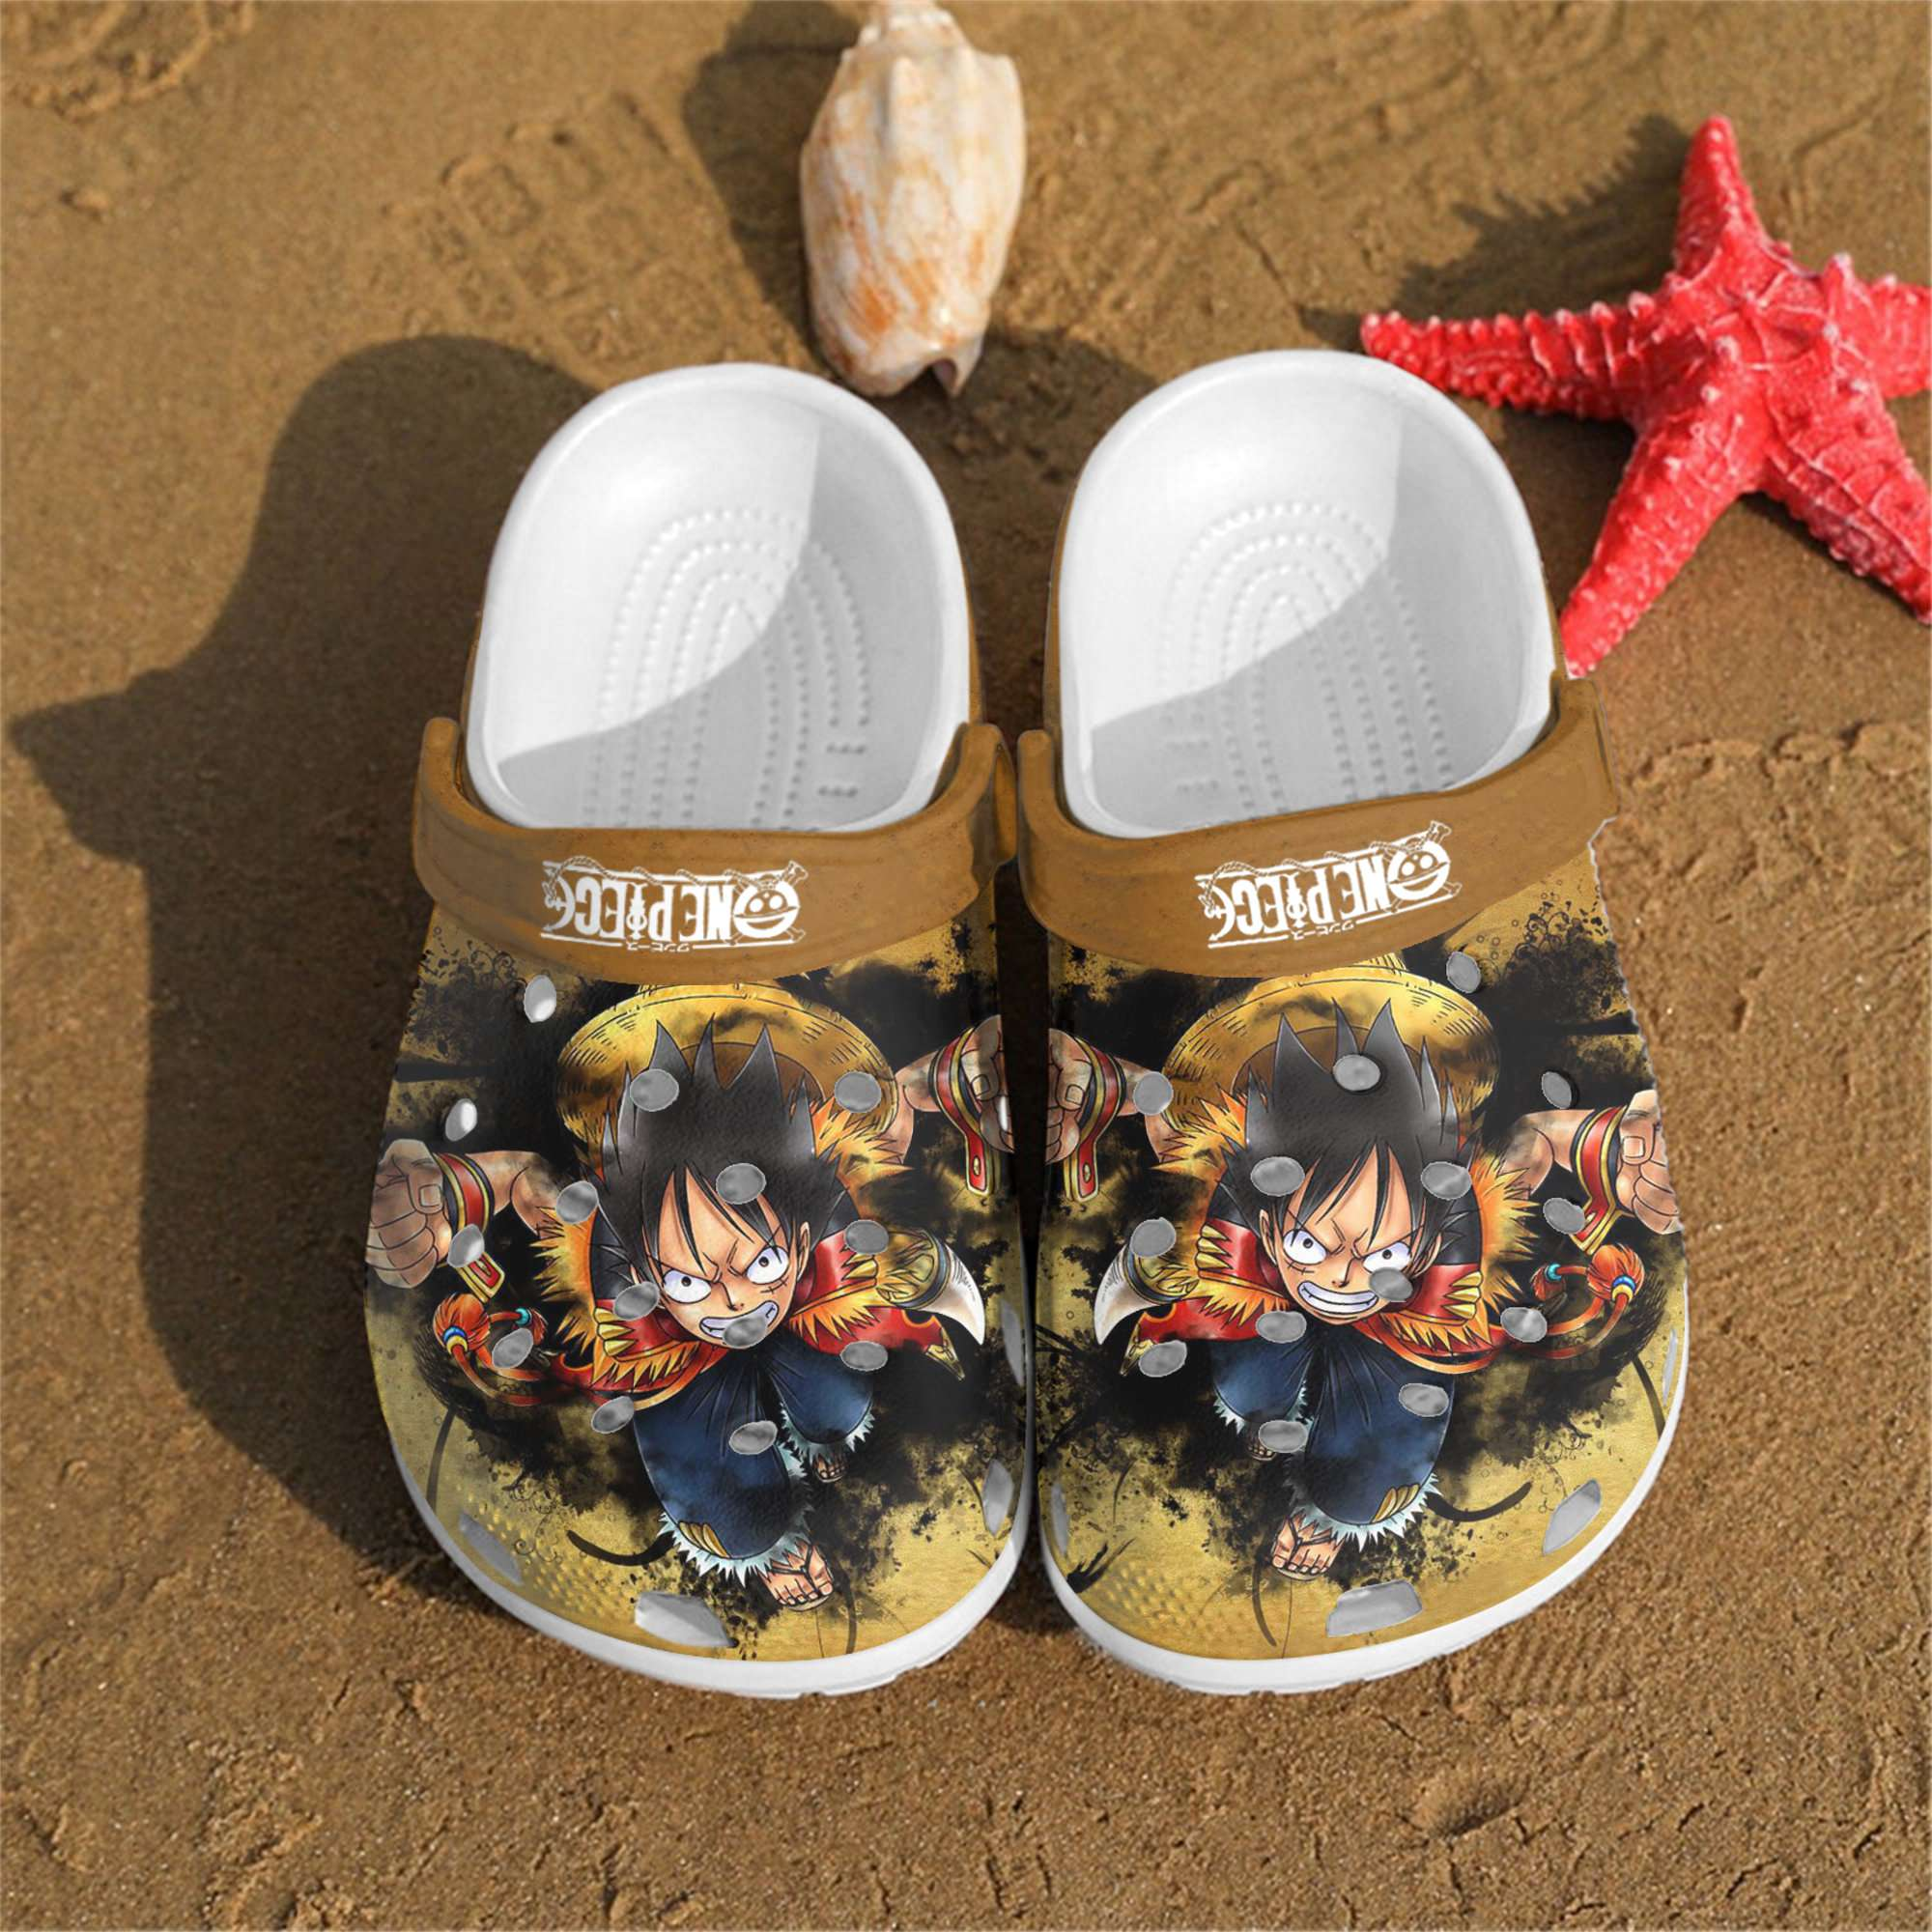 Personalized One Piece Crocs Clog Shoes